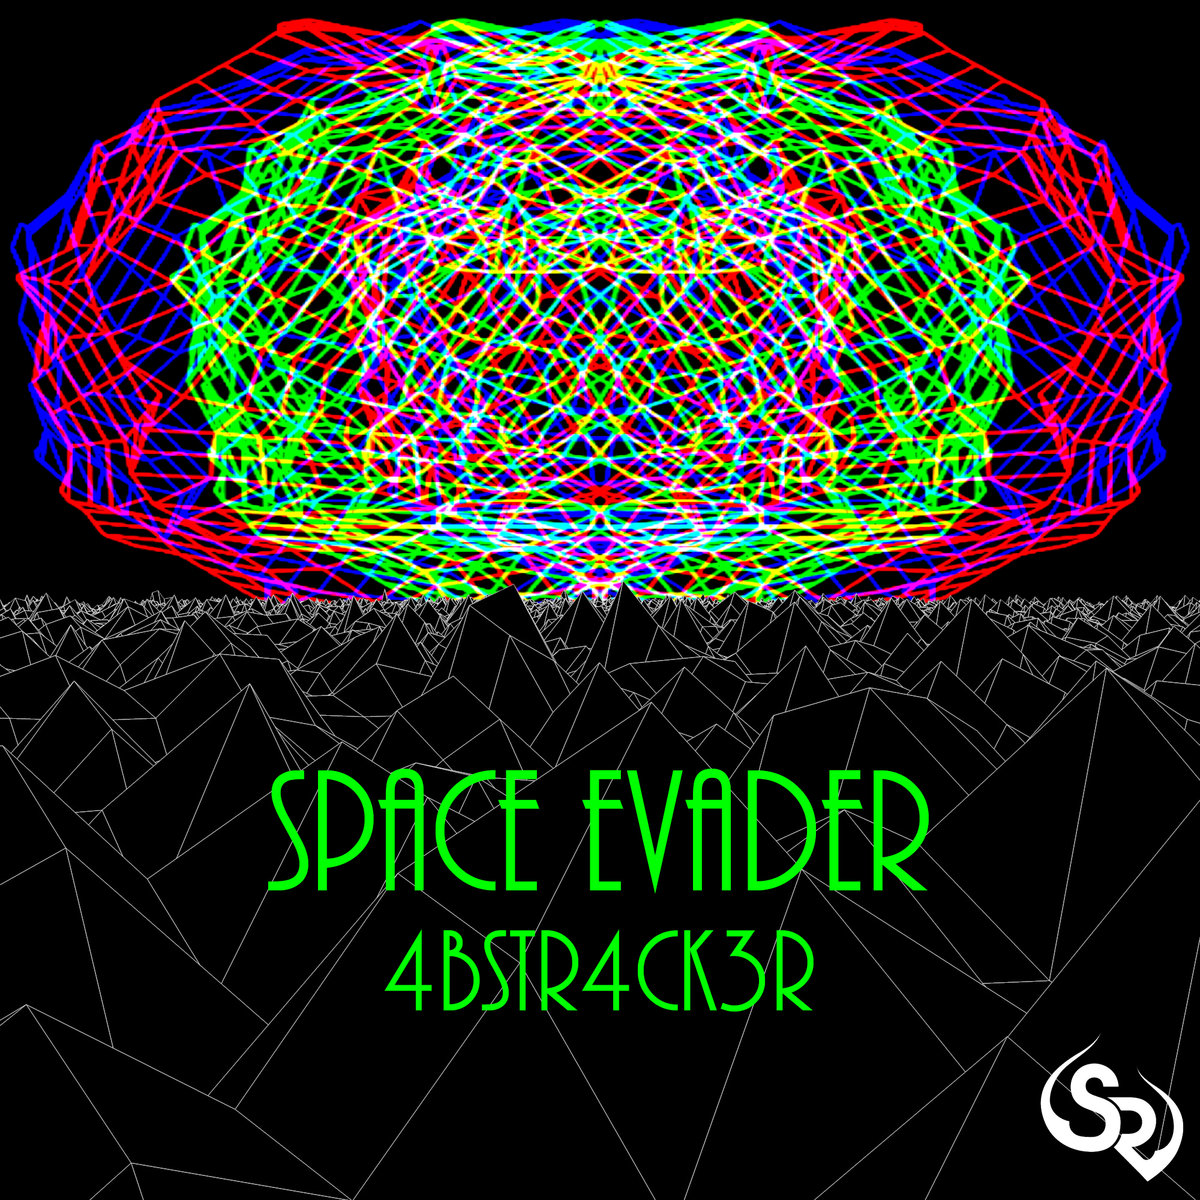 4bstr4ck3r - Adventure Mixtape @ 'Space Evader' album (4bstr4ck3r, bass)